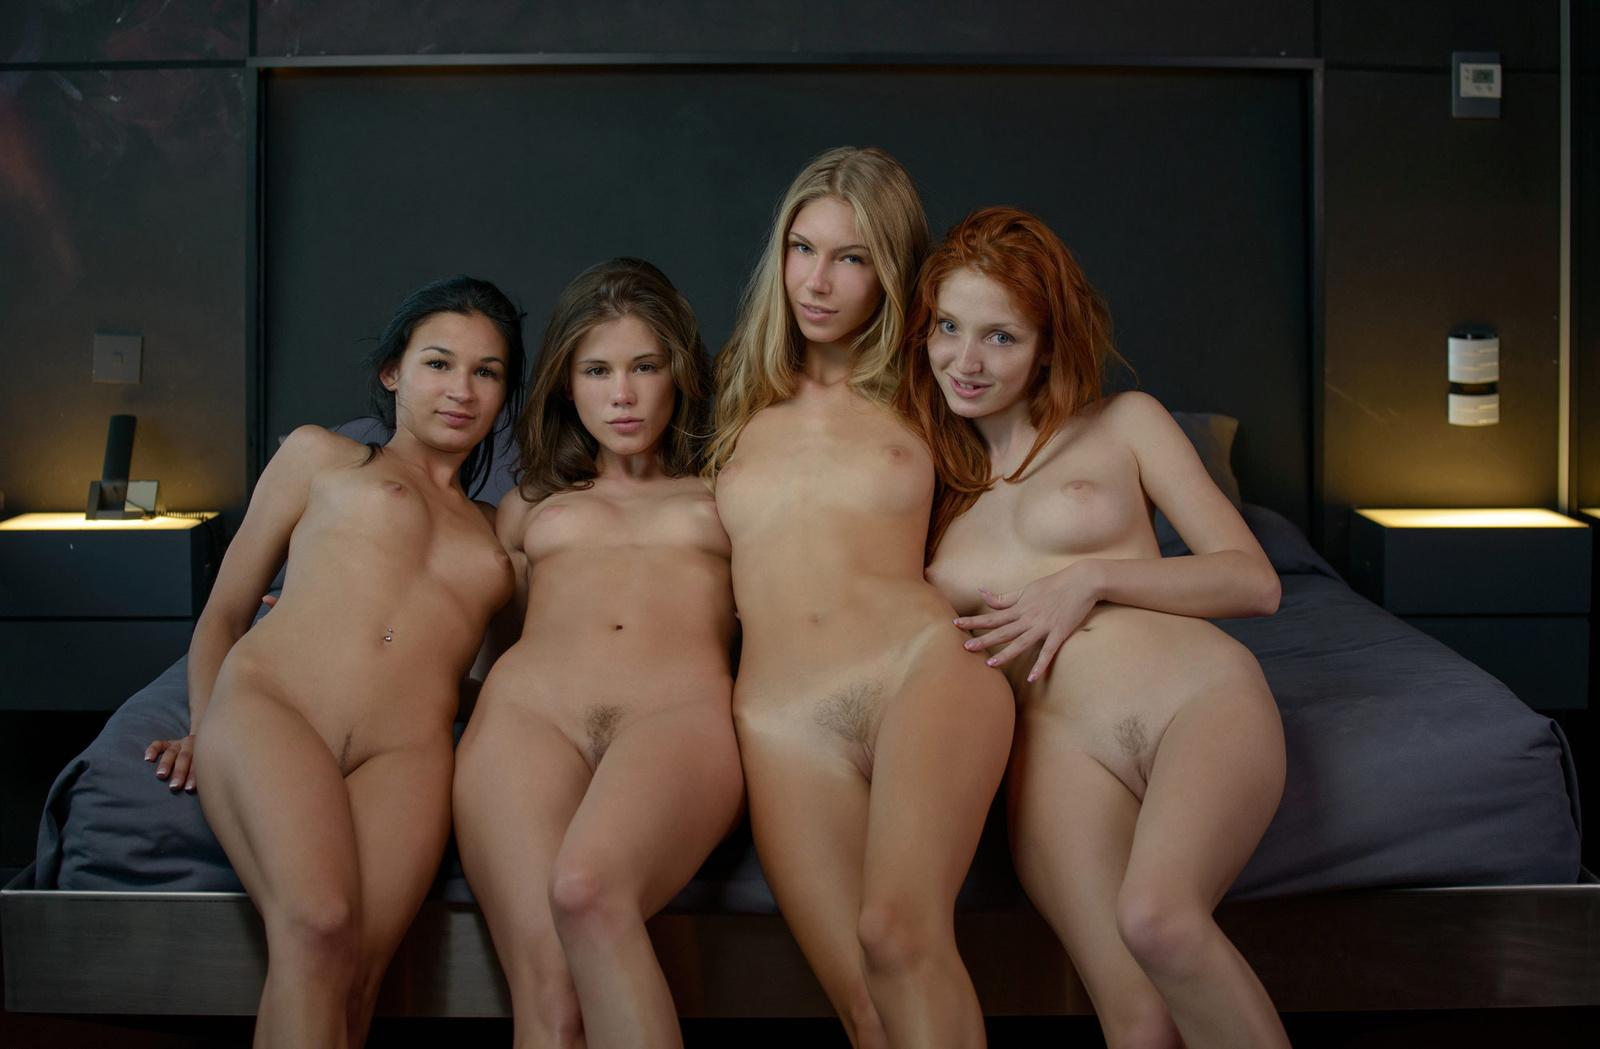 Free nude movies of girls